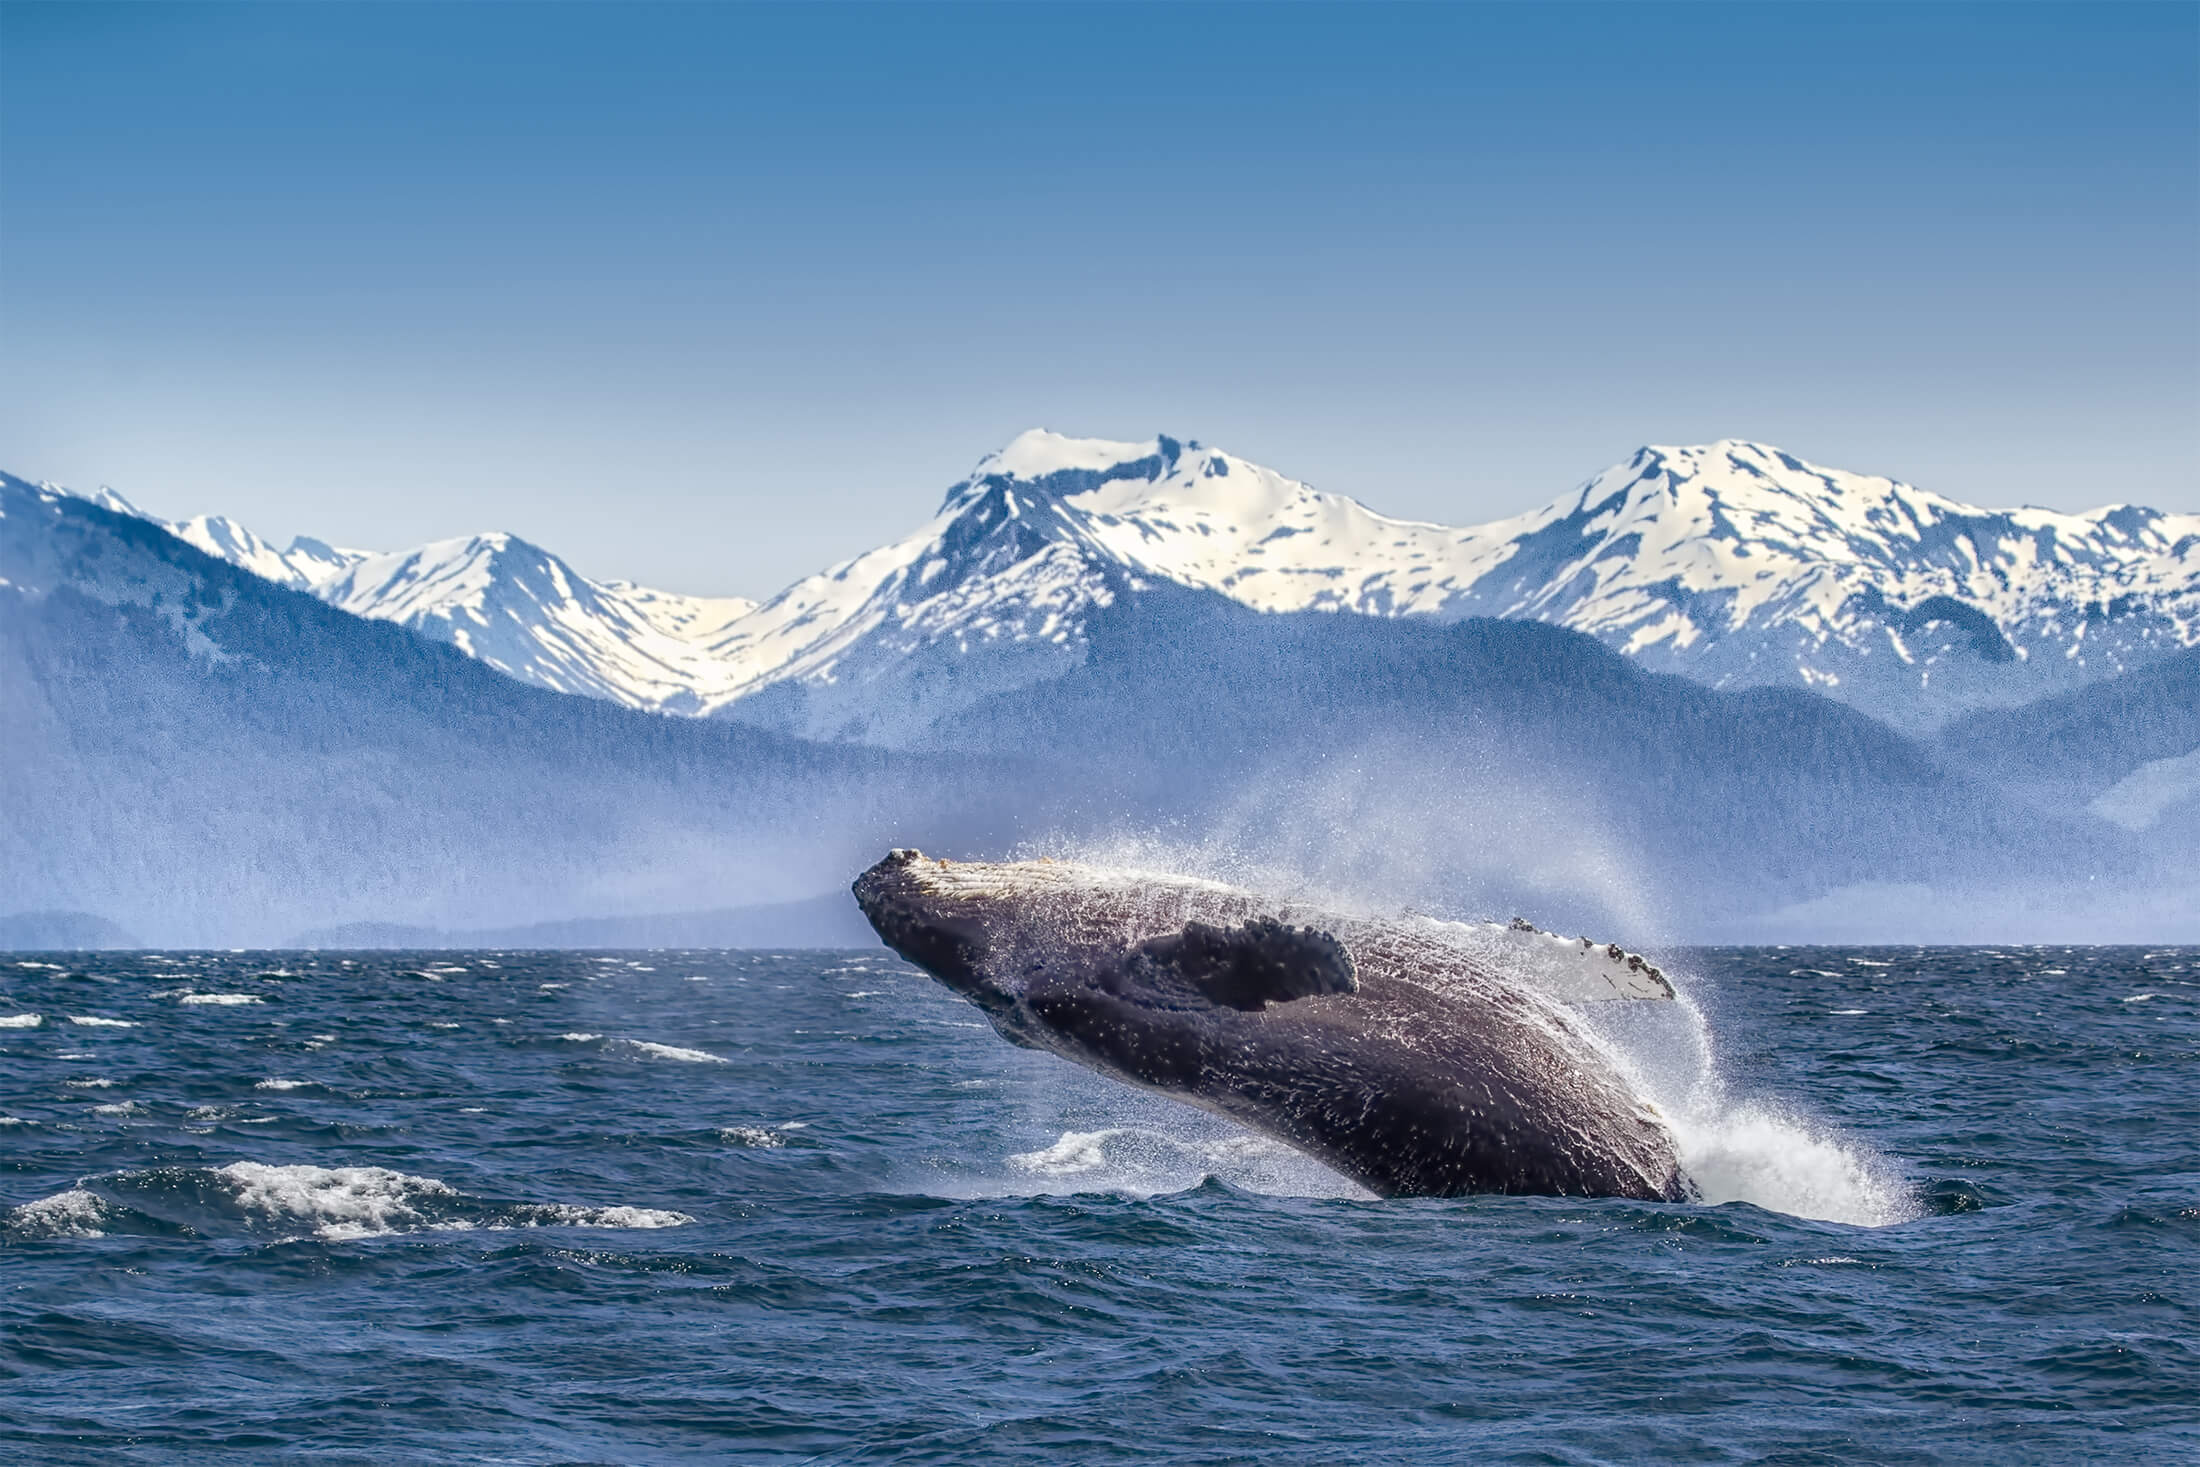 Whale jumping out of the ocean in Alaska